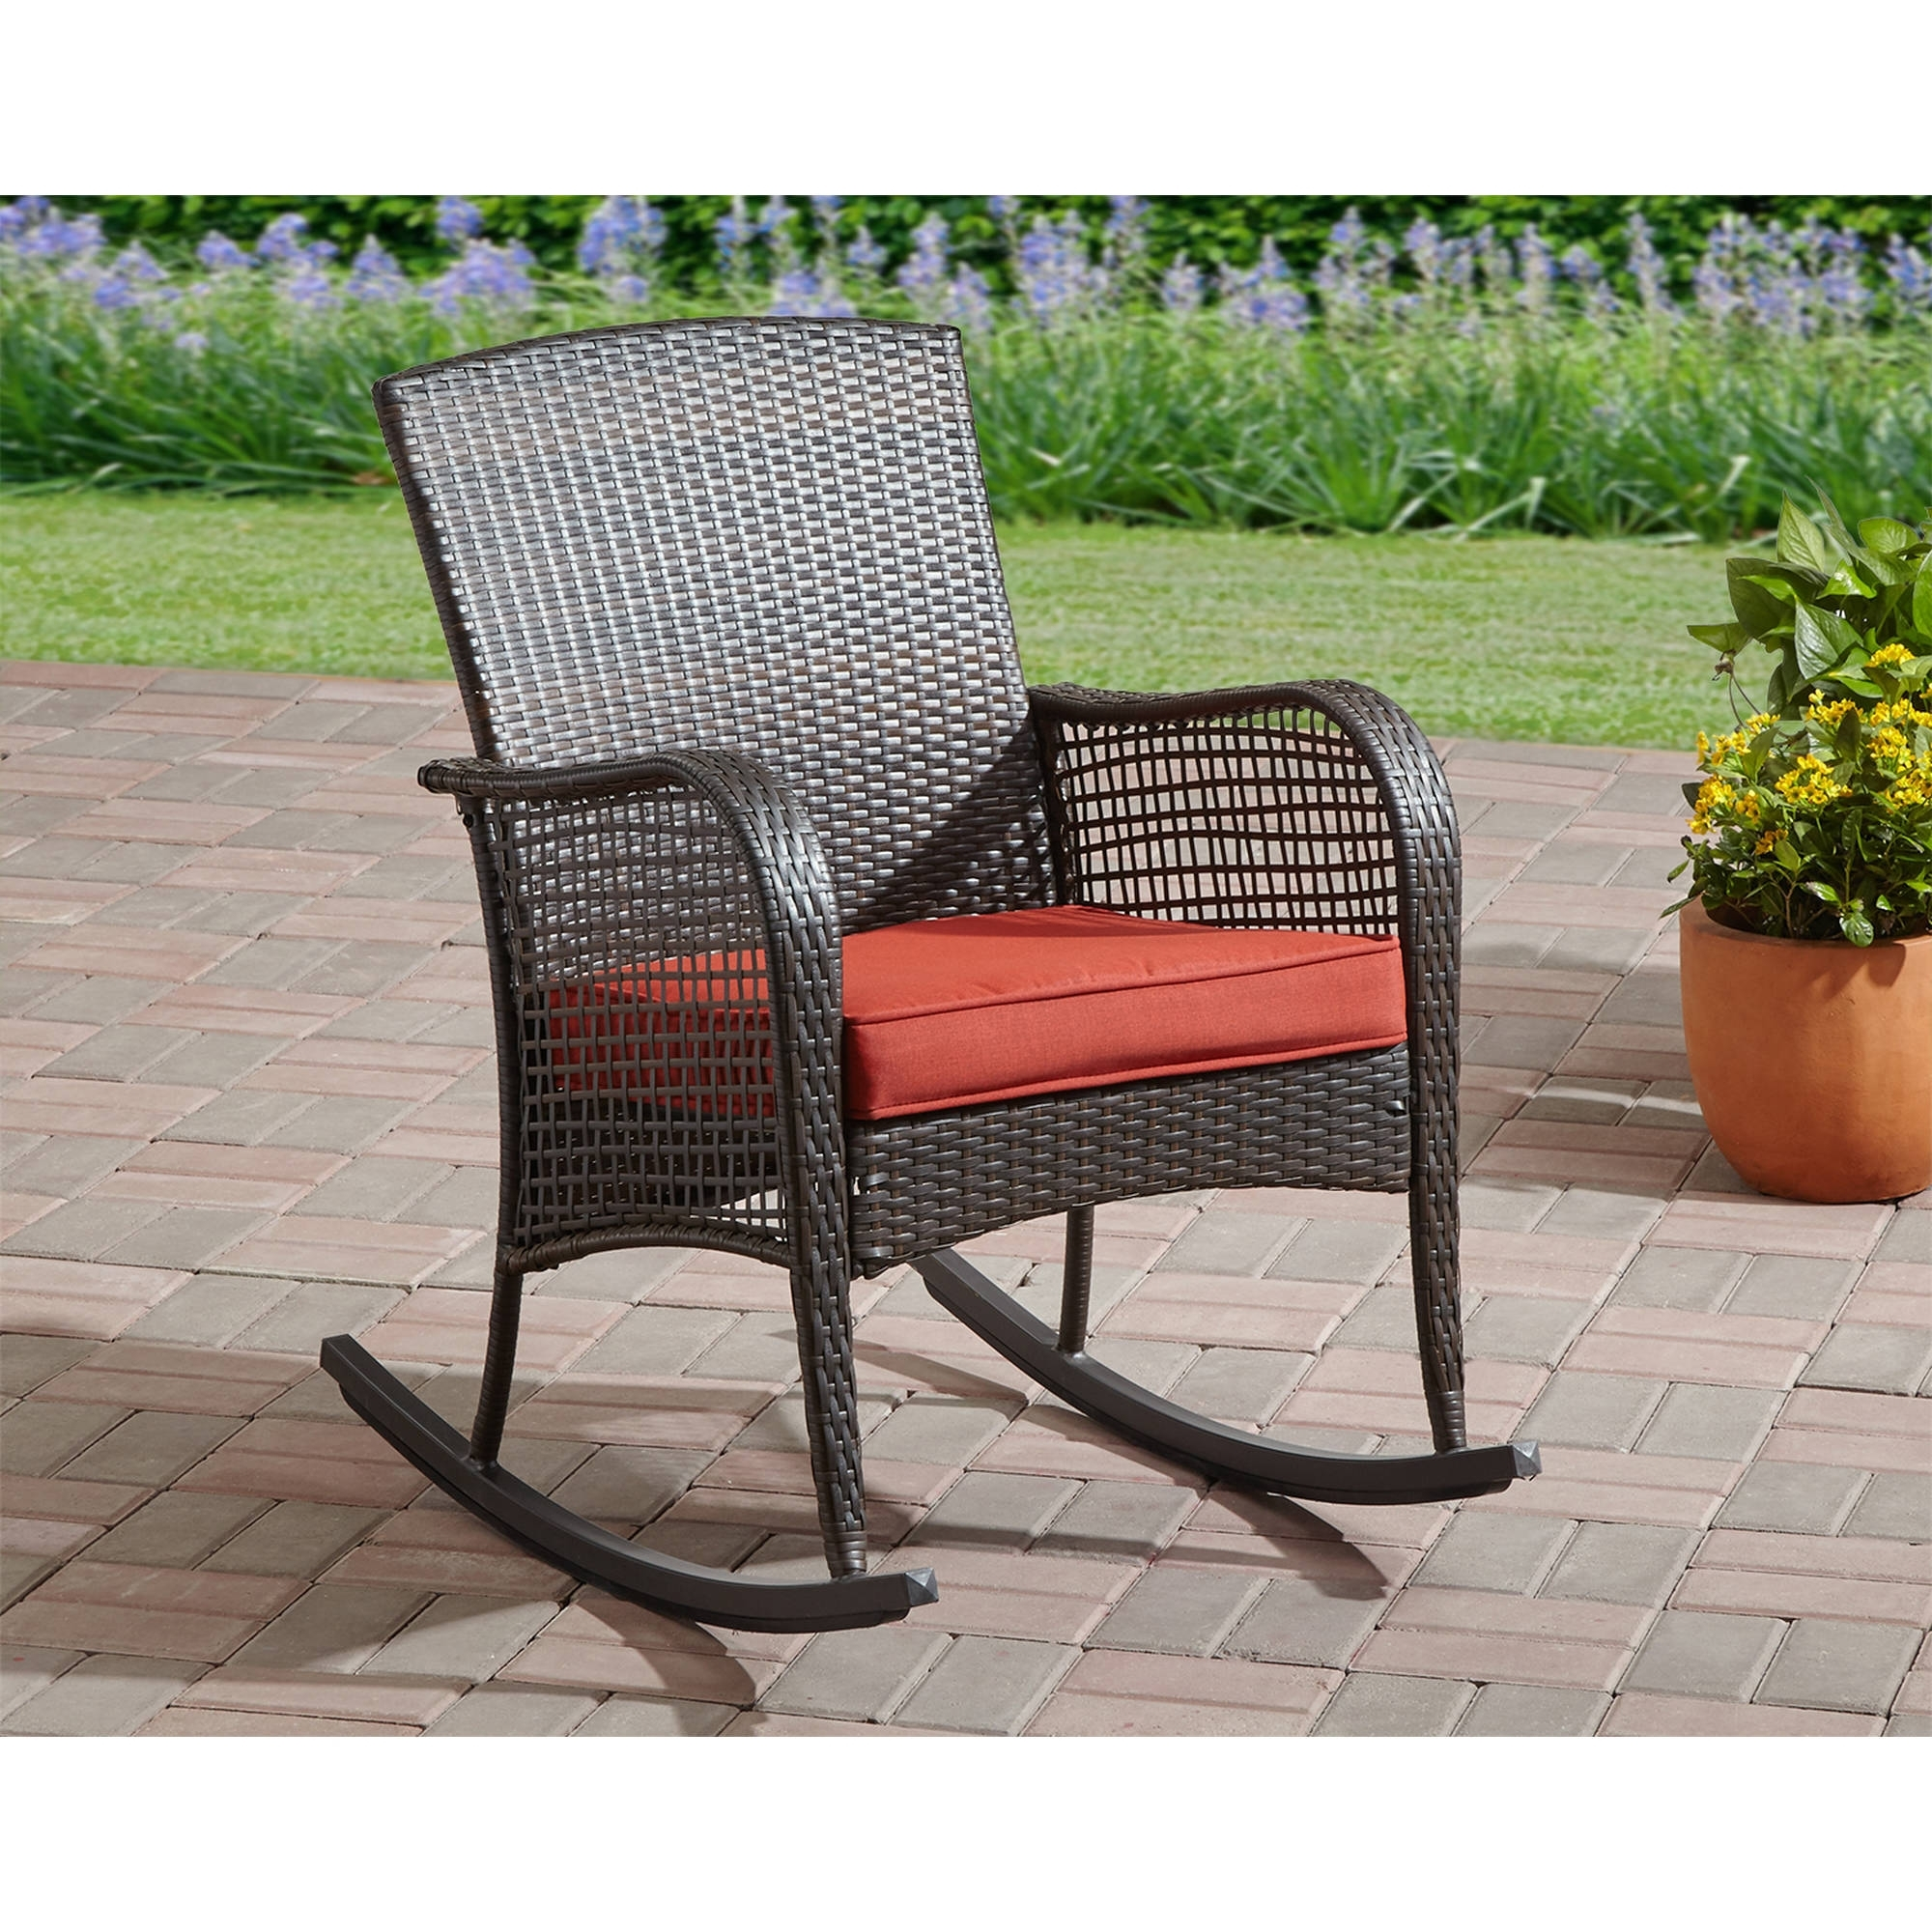 Inspiration about Rocking Chair Cushion Seat Wicker Steel Frame Outdoor Patio Deck Throughout Brown Patio Rocking Chairs (#3 of 15)